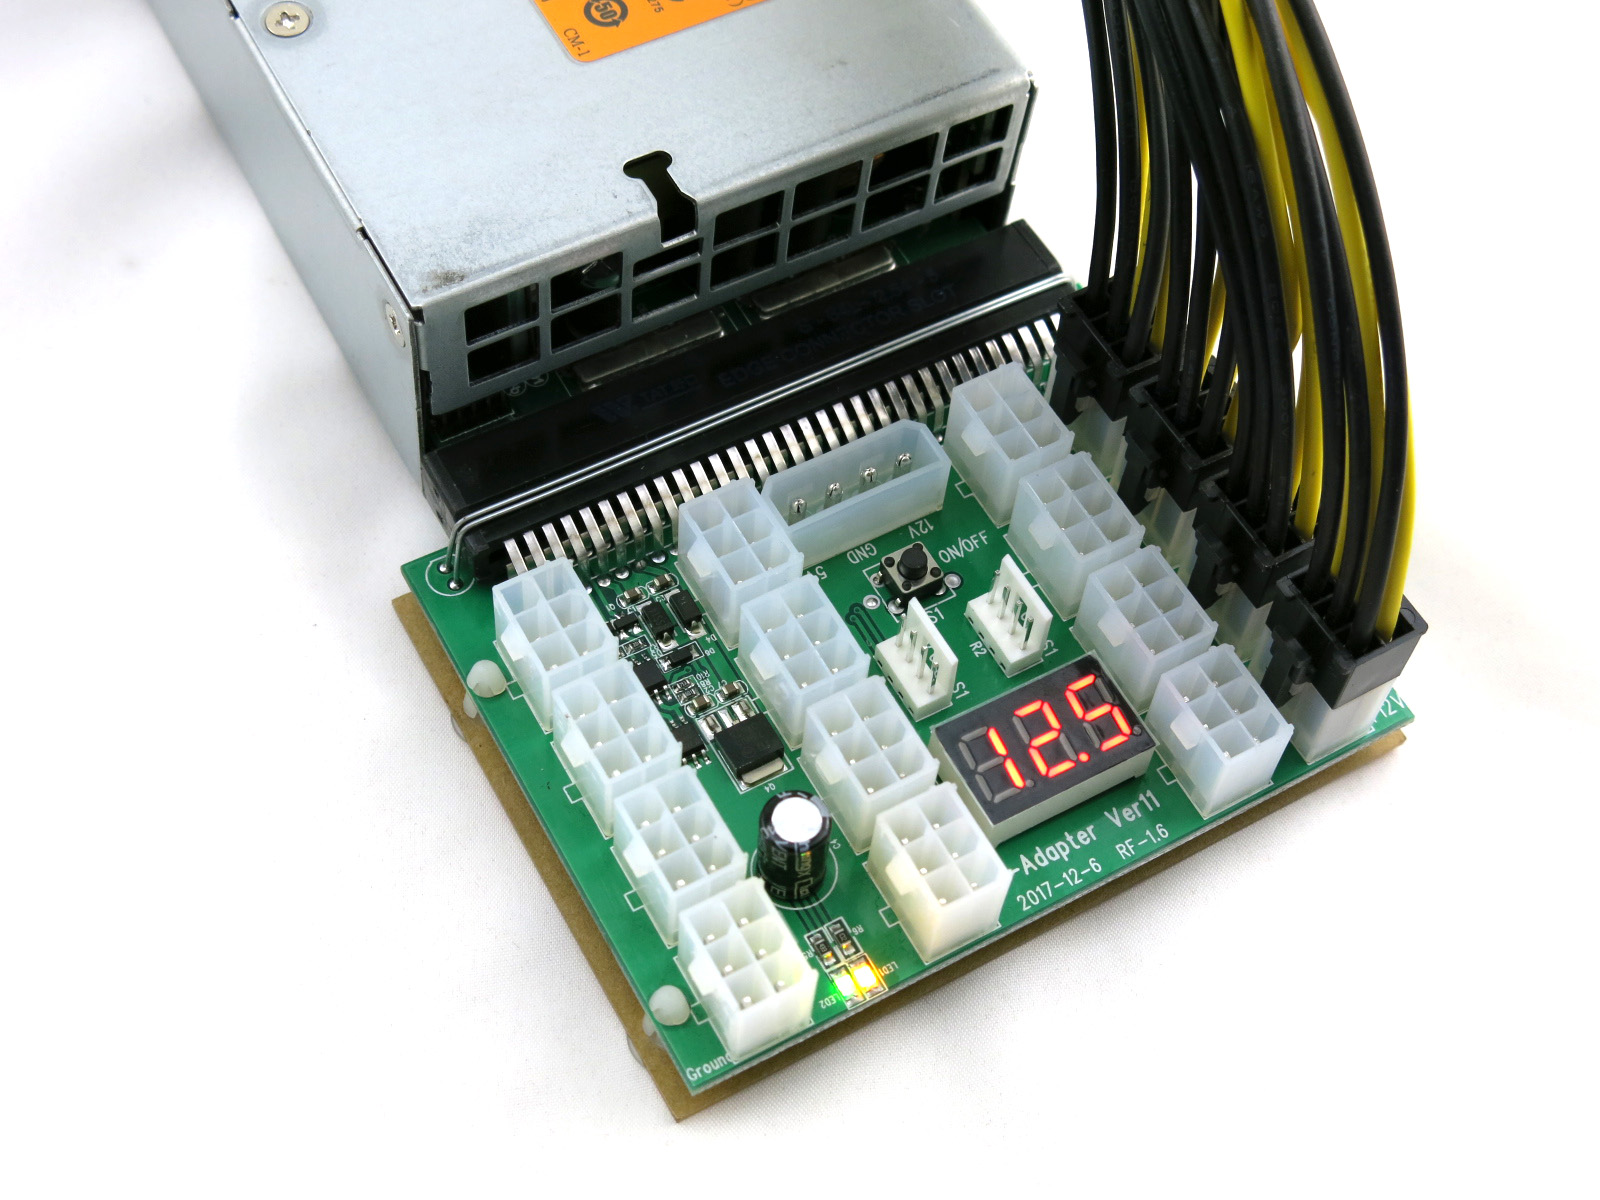 X11 power supply adapter with 8pin PCIe power cables for GPU mining